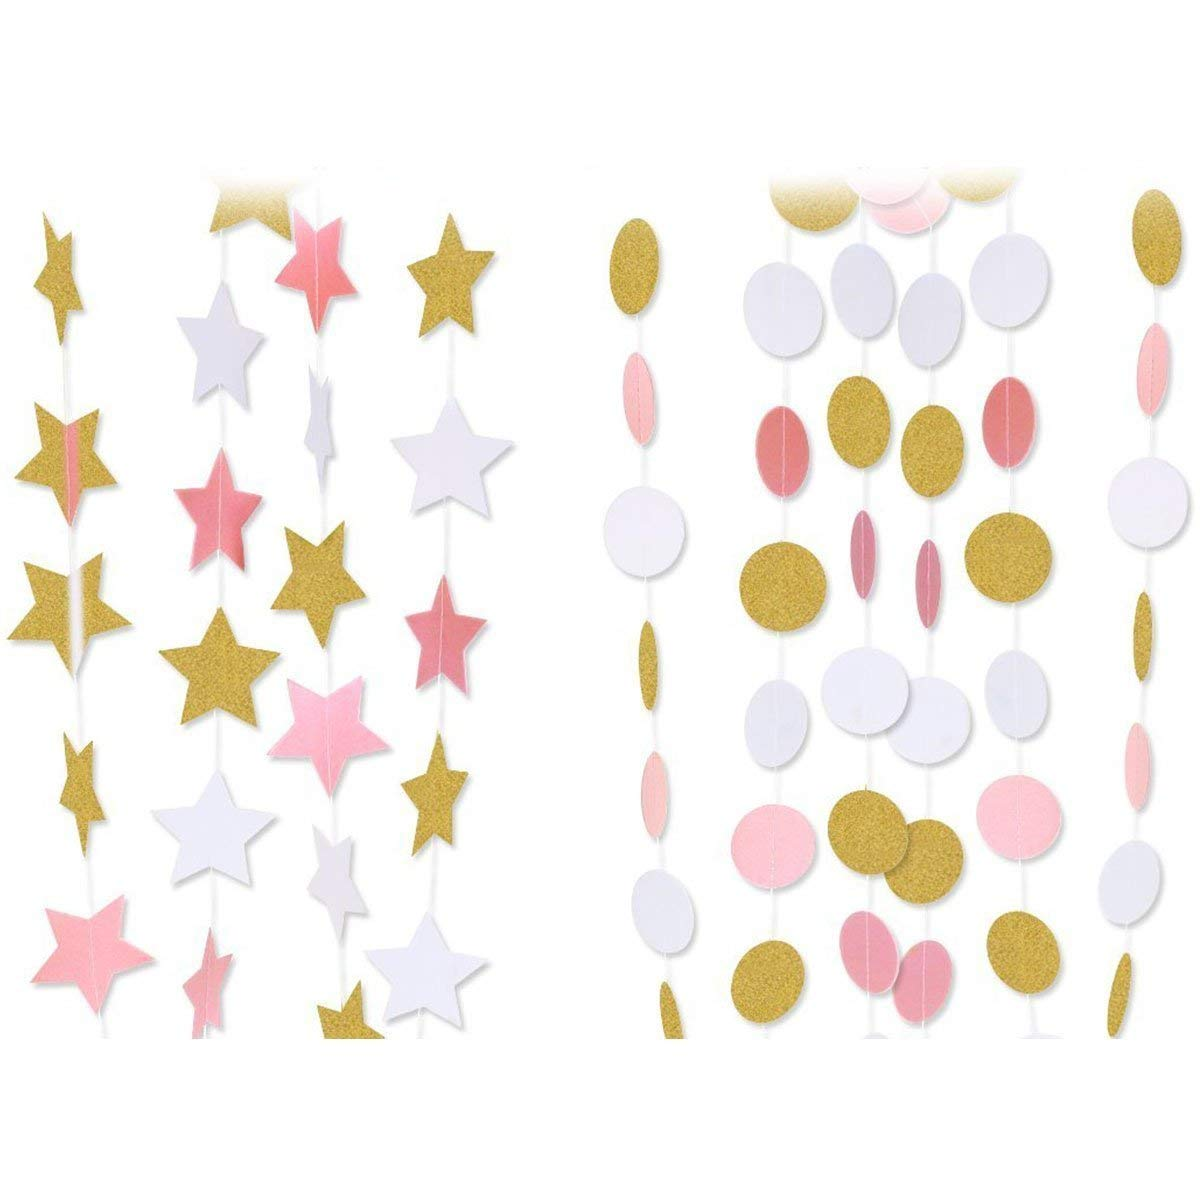 Paper Garland, Emopeak 80ft Hanging Glitter Paper Garland Circle Dots for Wedding, Bridal Showers, Birthday Party, Event Party Decor (6Pack Circle Polka Dots and 2Pack Stars-Pink White Gold)